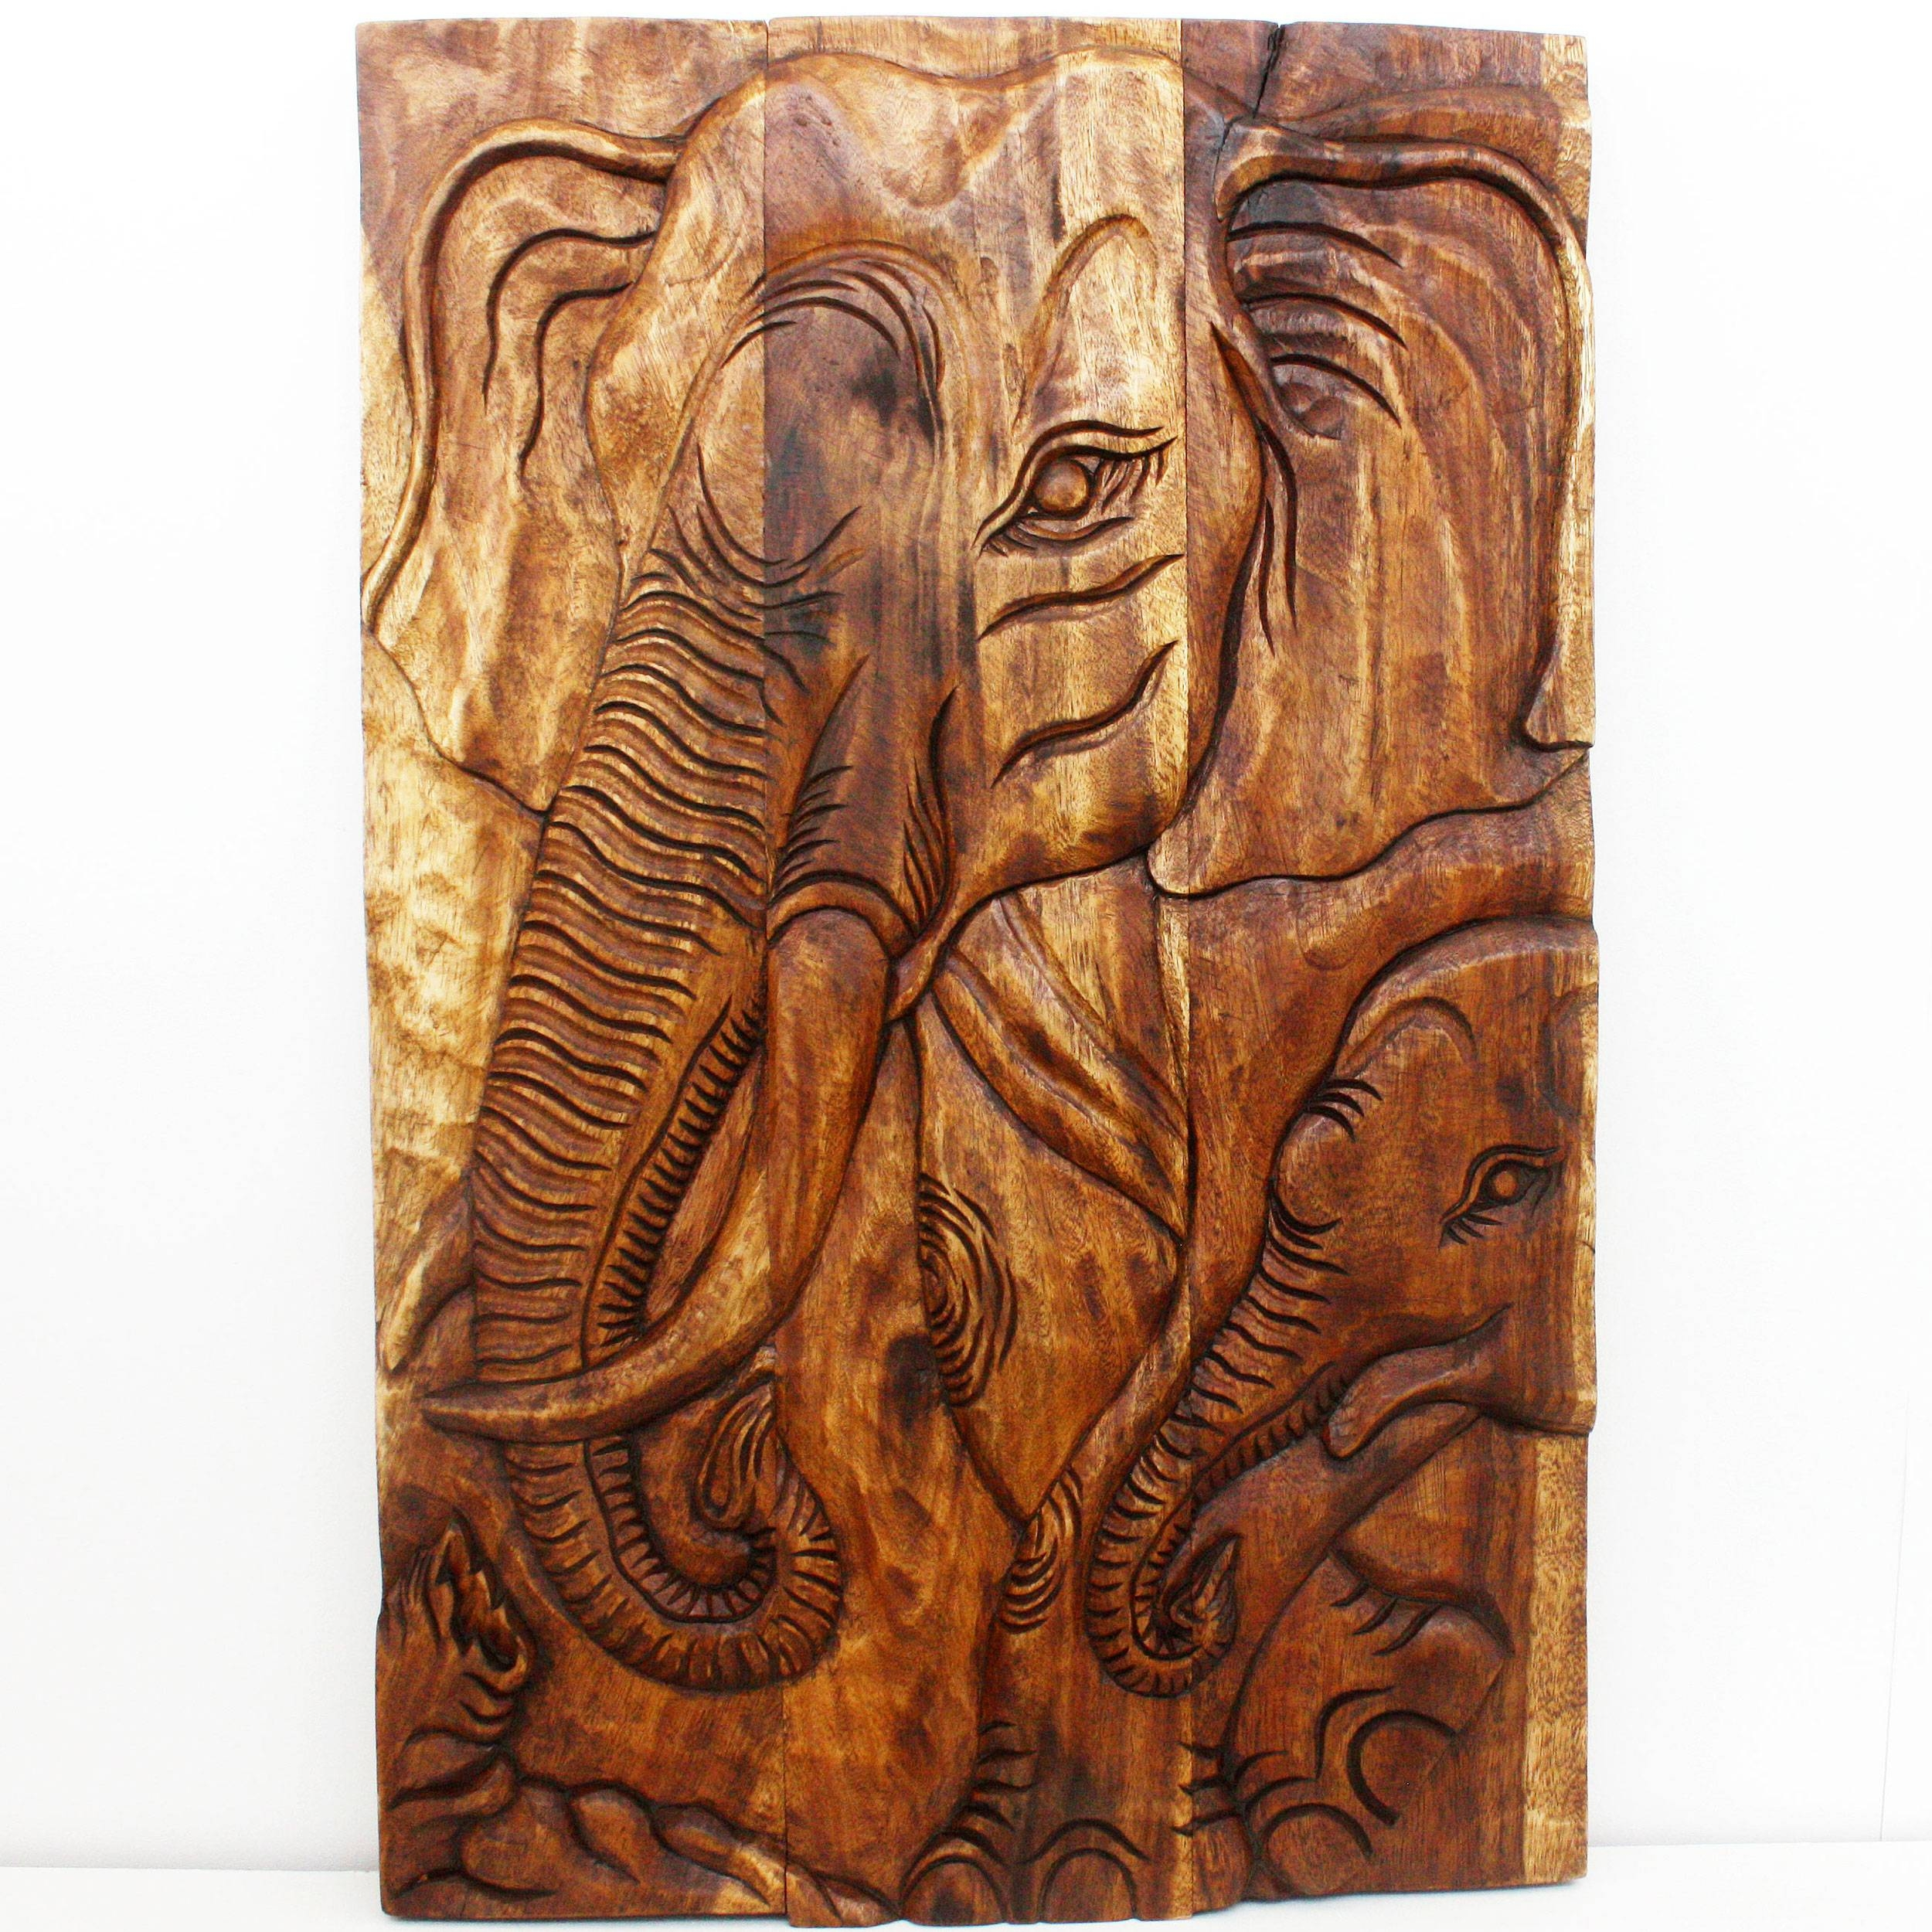 Wall Decor Thailand Wood Art Panels Nature Carvings Inside Recent Wood Carved Wall Art Panels (View 23 of 25)